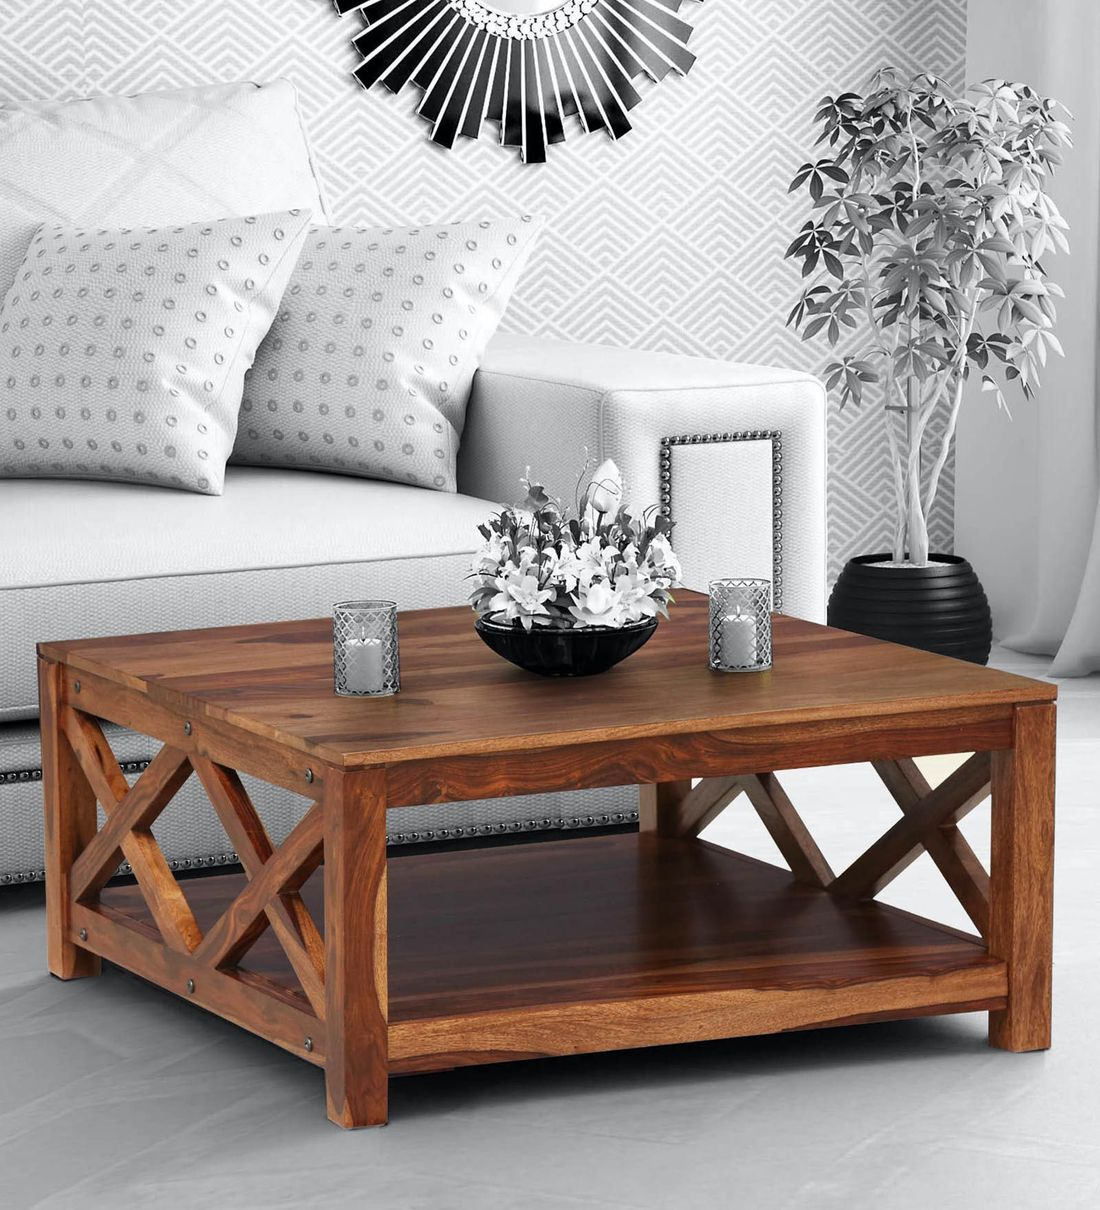 Buy Kryss Solid Wood Coffee Table In Rustic Teak Finish Woodsworth By Pepperfry Online Square Coffee Tables Tables Furniture Pepperfry Product